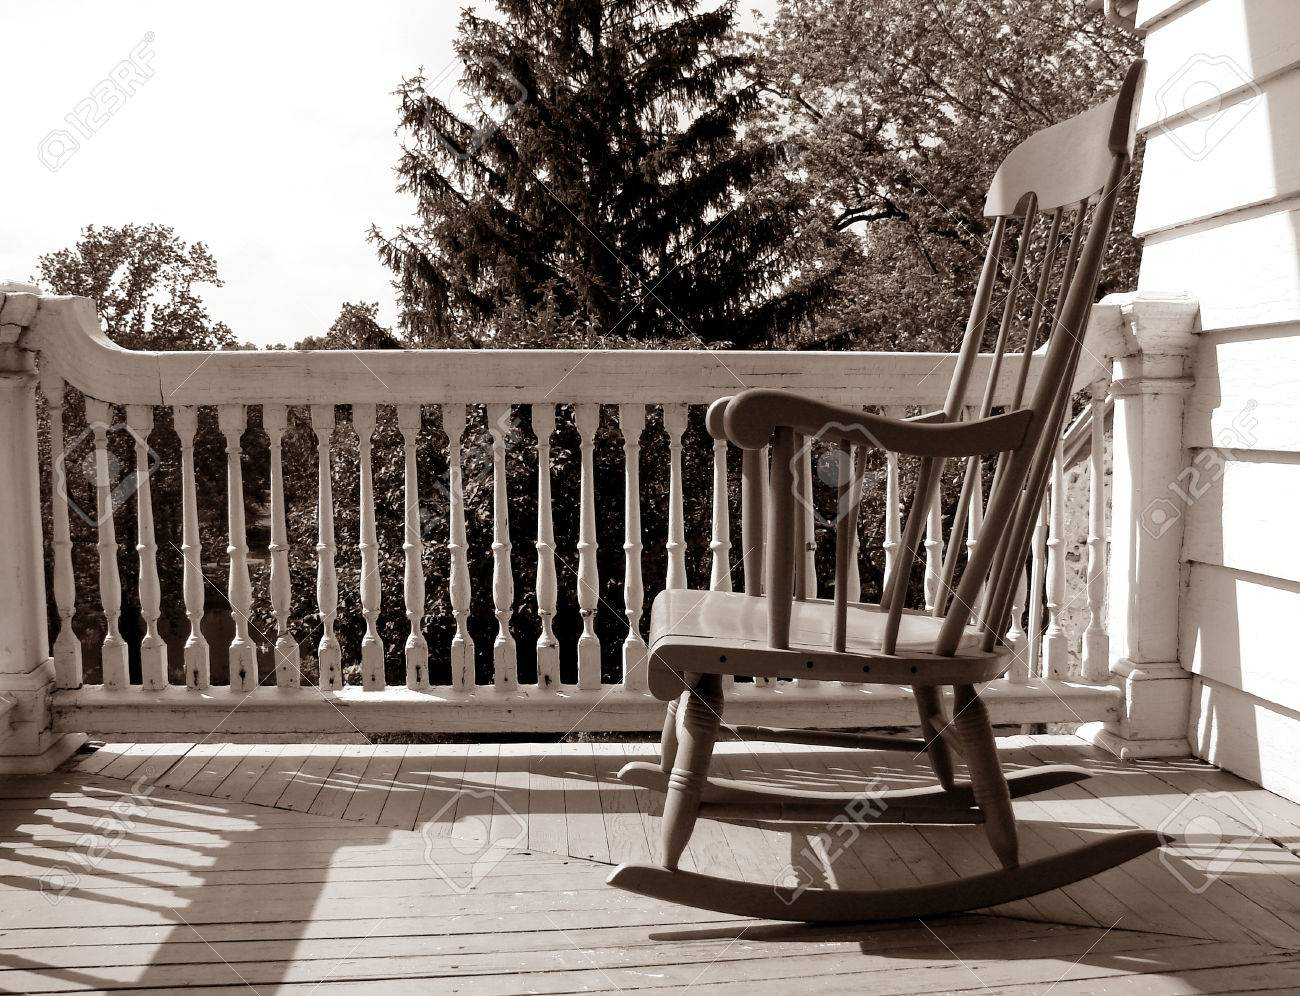 Antique rocking chair black - Antique Rocking Chair Rocking Chair On An Old House Porch